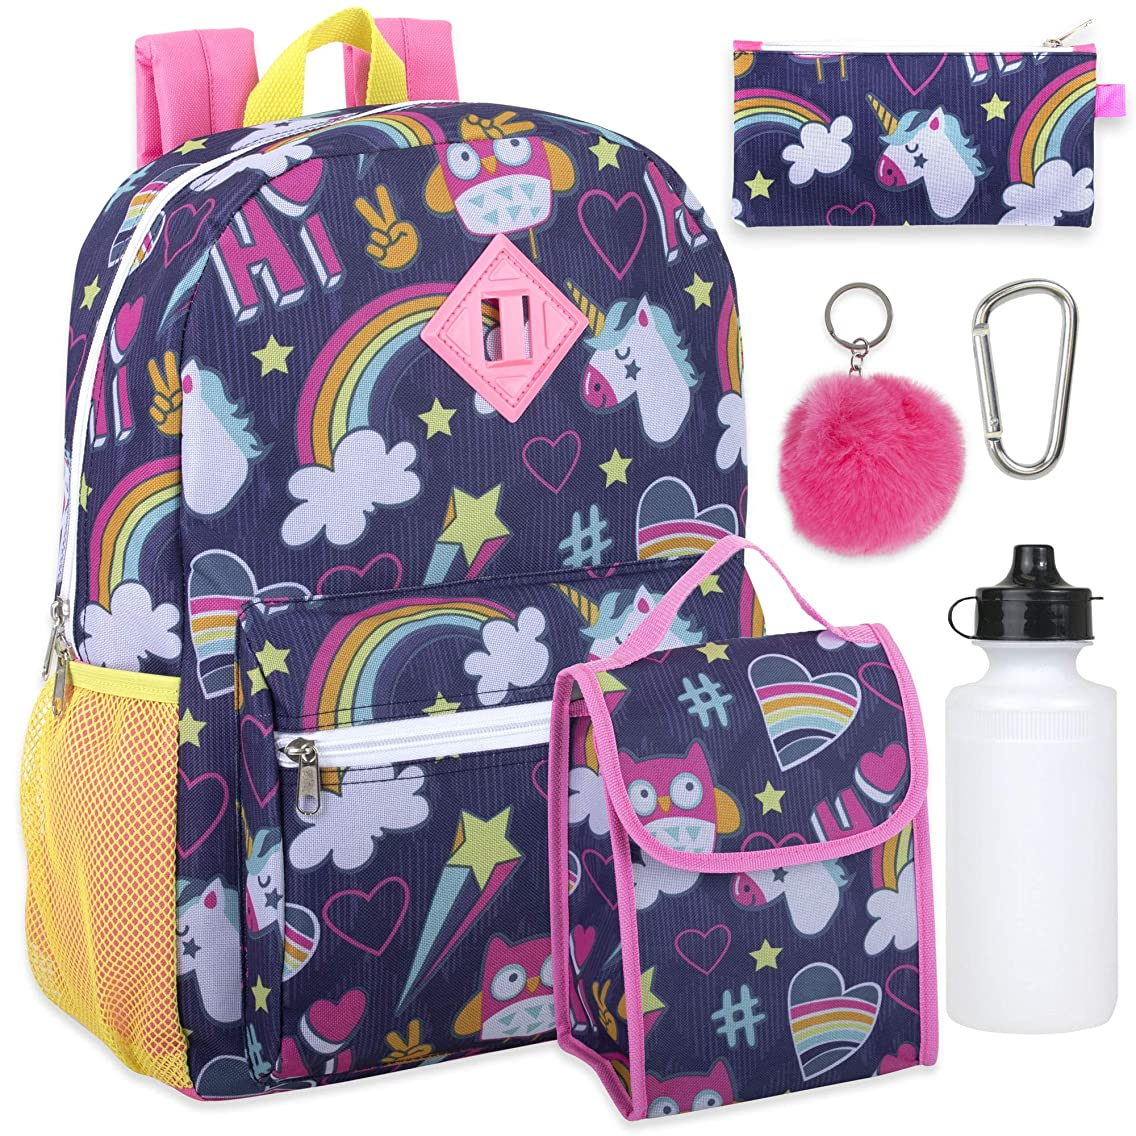 Girl's 6 in 1 Backpack Set With Lunch Bag, Pencil Case, Bottle, Keychain, Clip (Unicorn clouds)